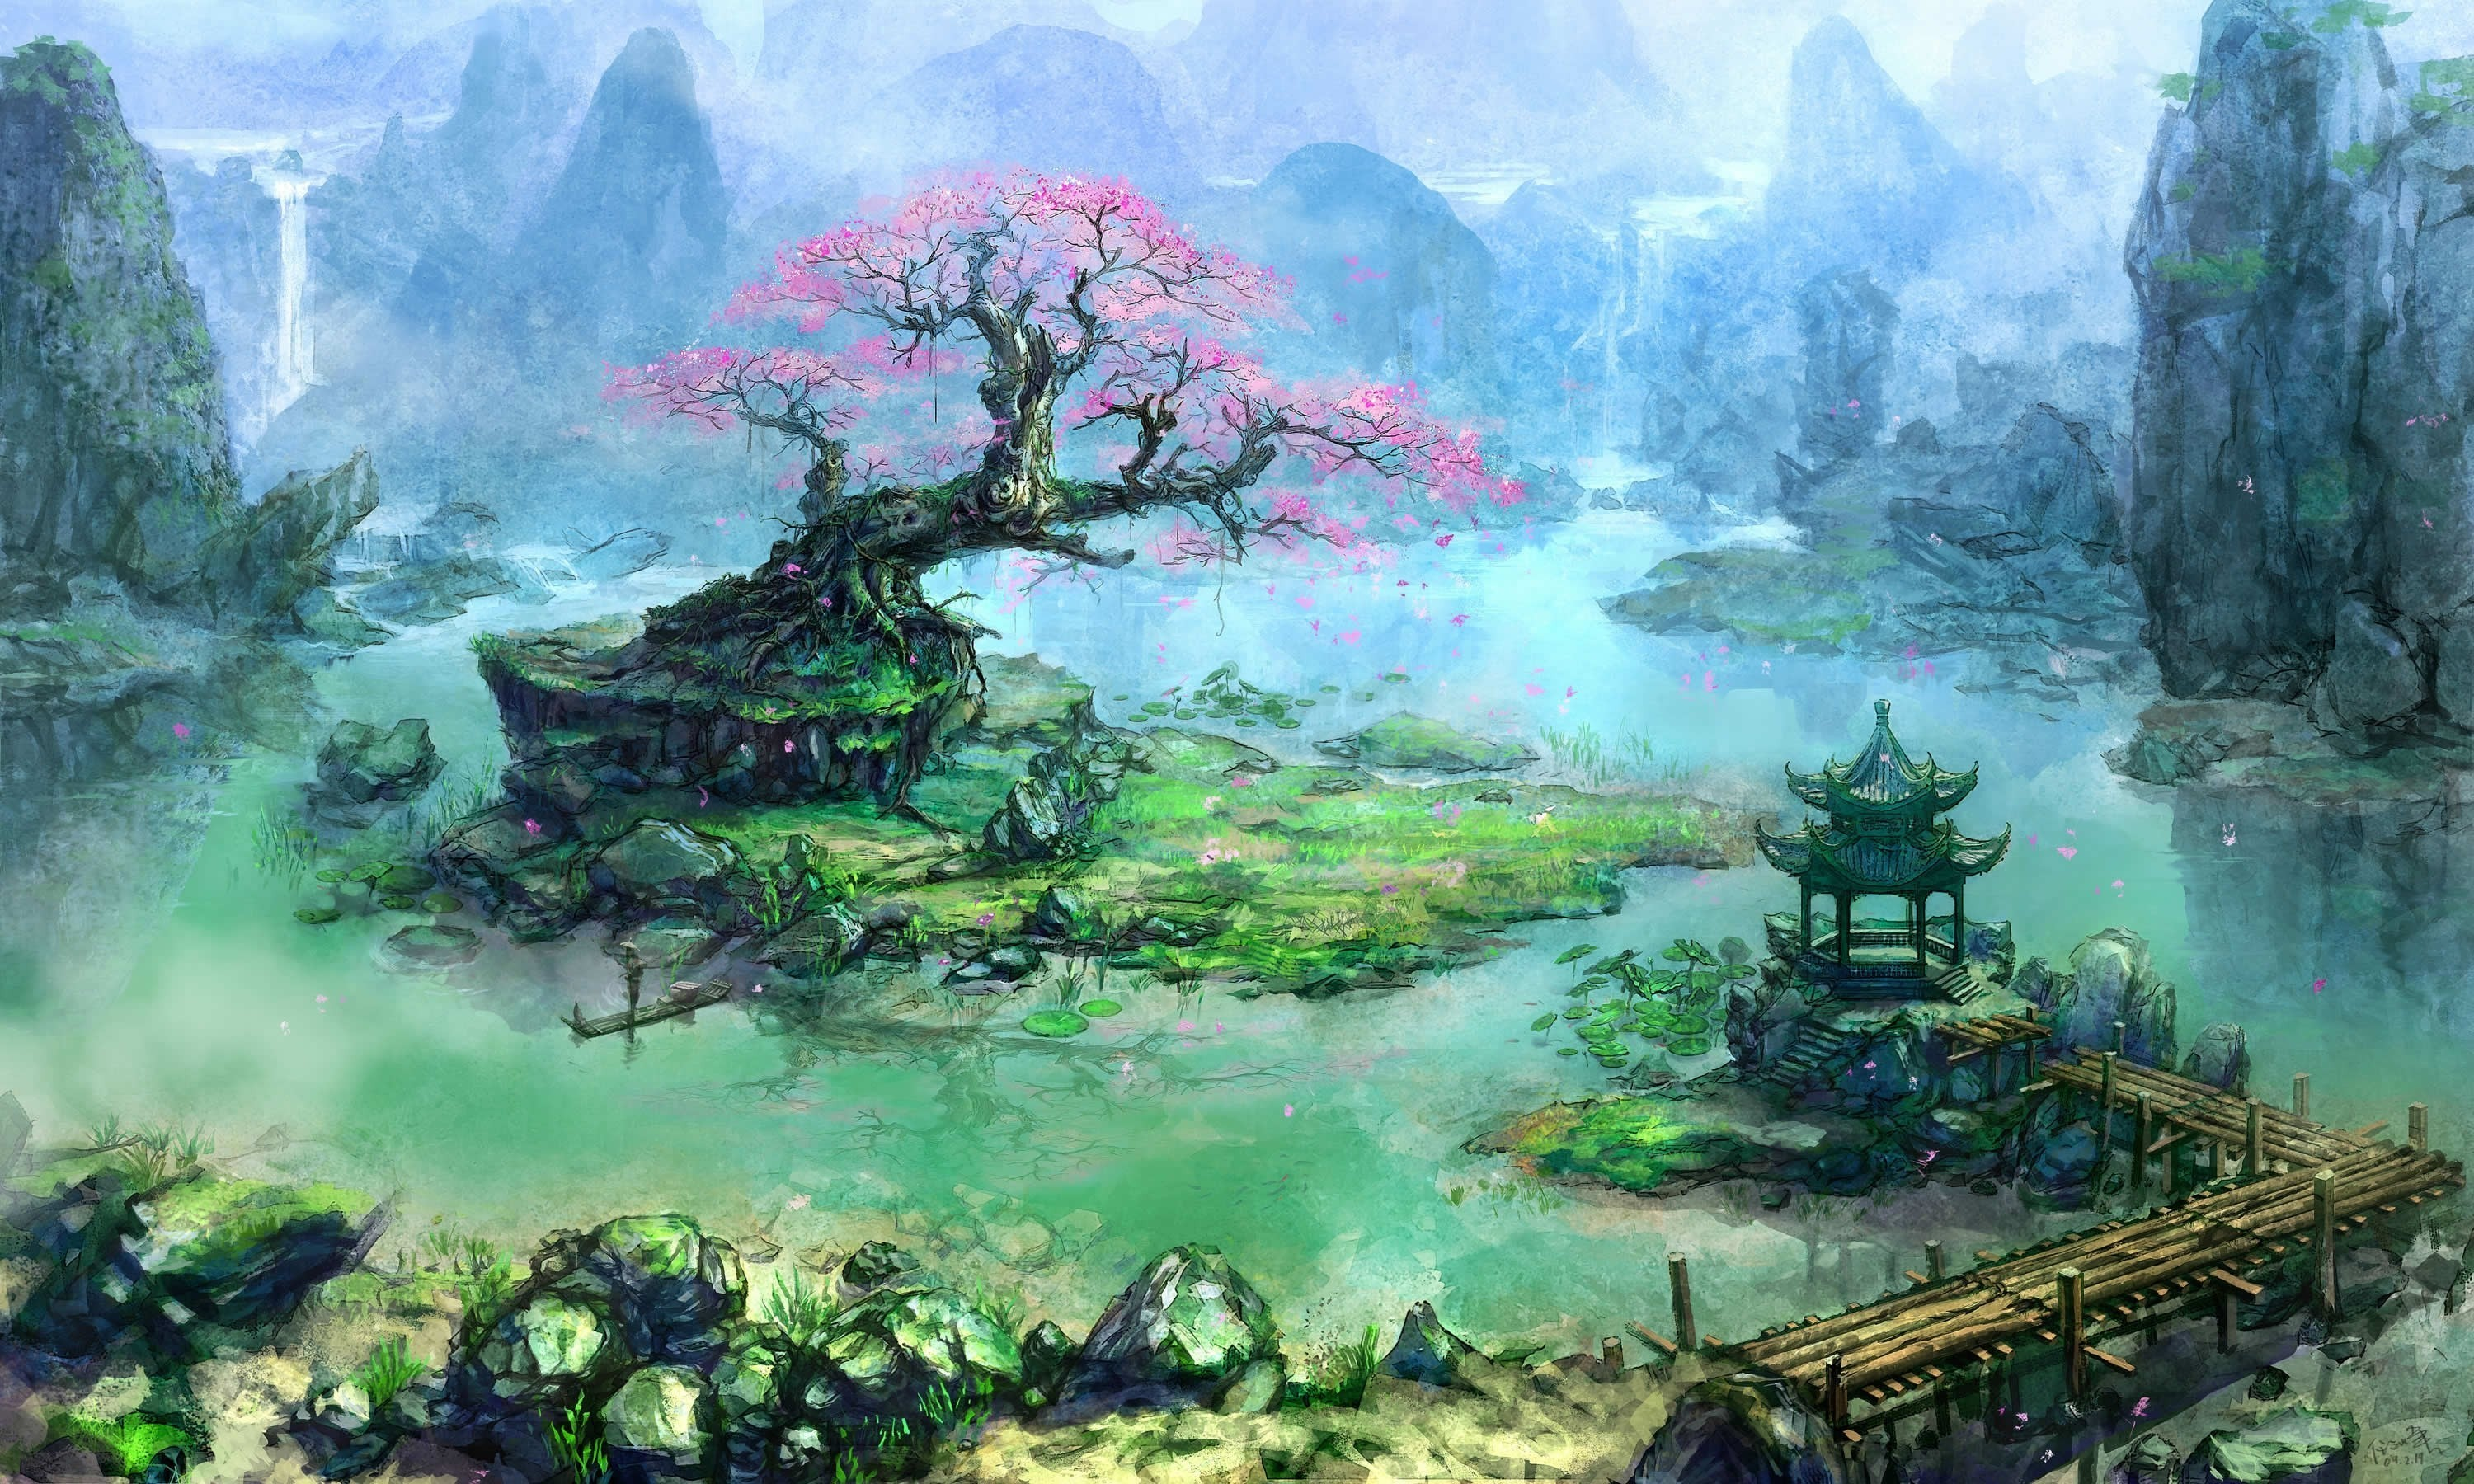 3000x1800 General  artwork fantasy art trees Asian architecture bonsai  waterfall river pier